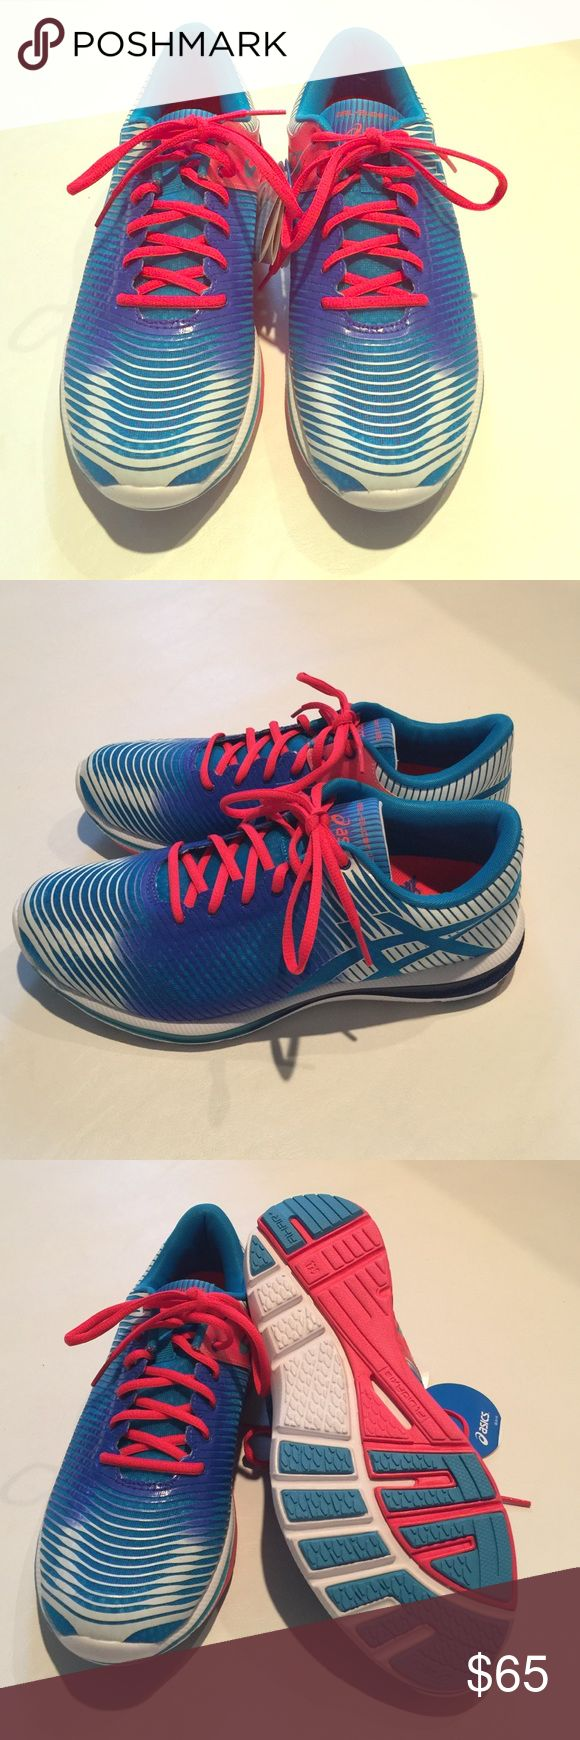 ASICS:  (STYLE:  Gel) Women's Running Shoe ASICS:  (STYLE:  Gel) Women's Running ShoeS. COLOR:  White/Cobalt Blue/Aqua Blue/Bright Red/. Very soft mesh outer layer.  BRAND NEW!  NEVER USED!  IN ORIGINAL BOX! Asics Shoes Athletic Shoes